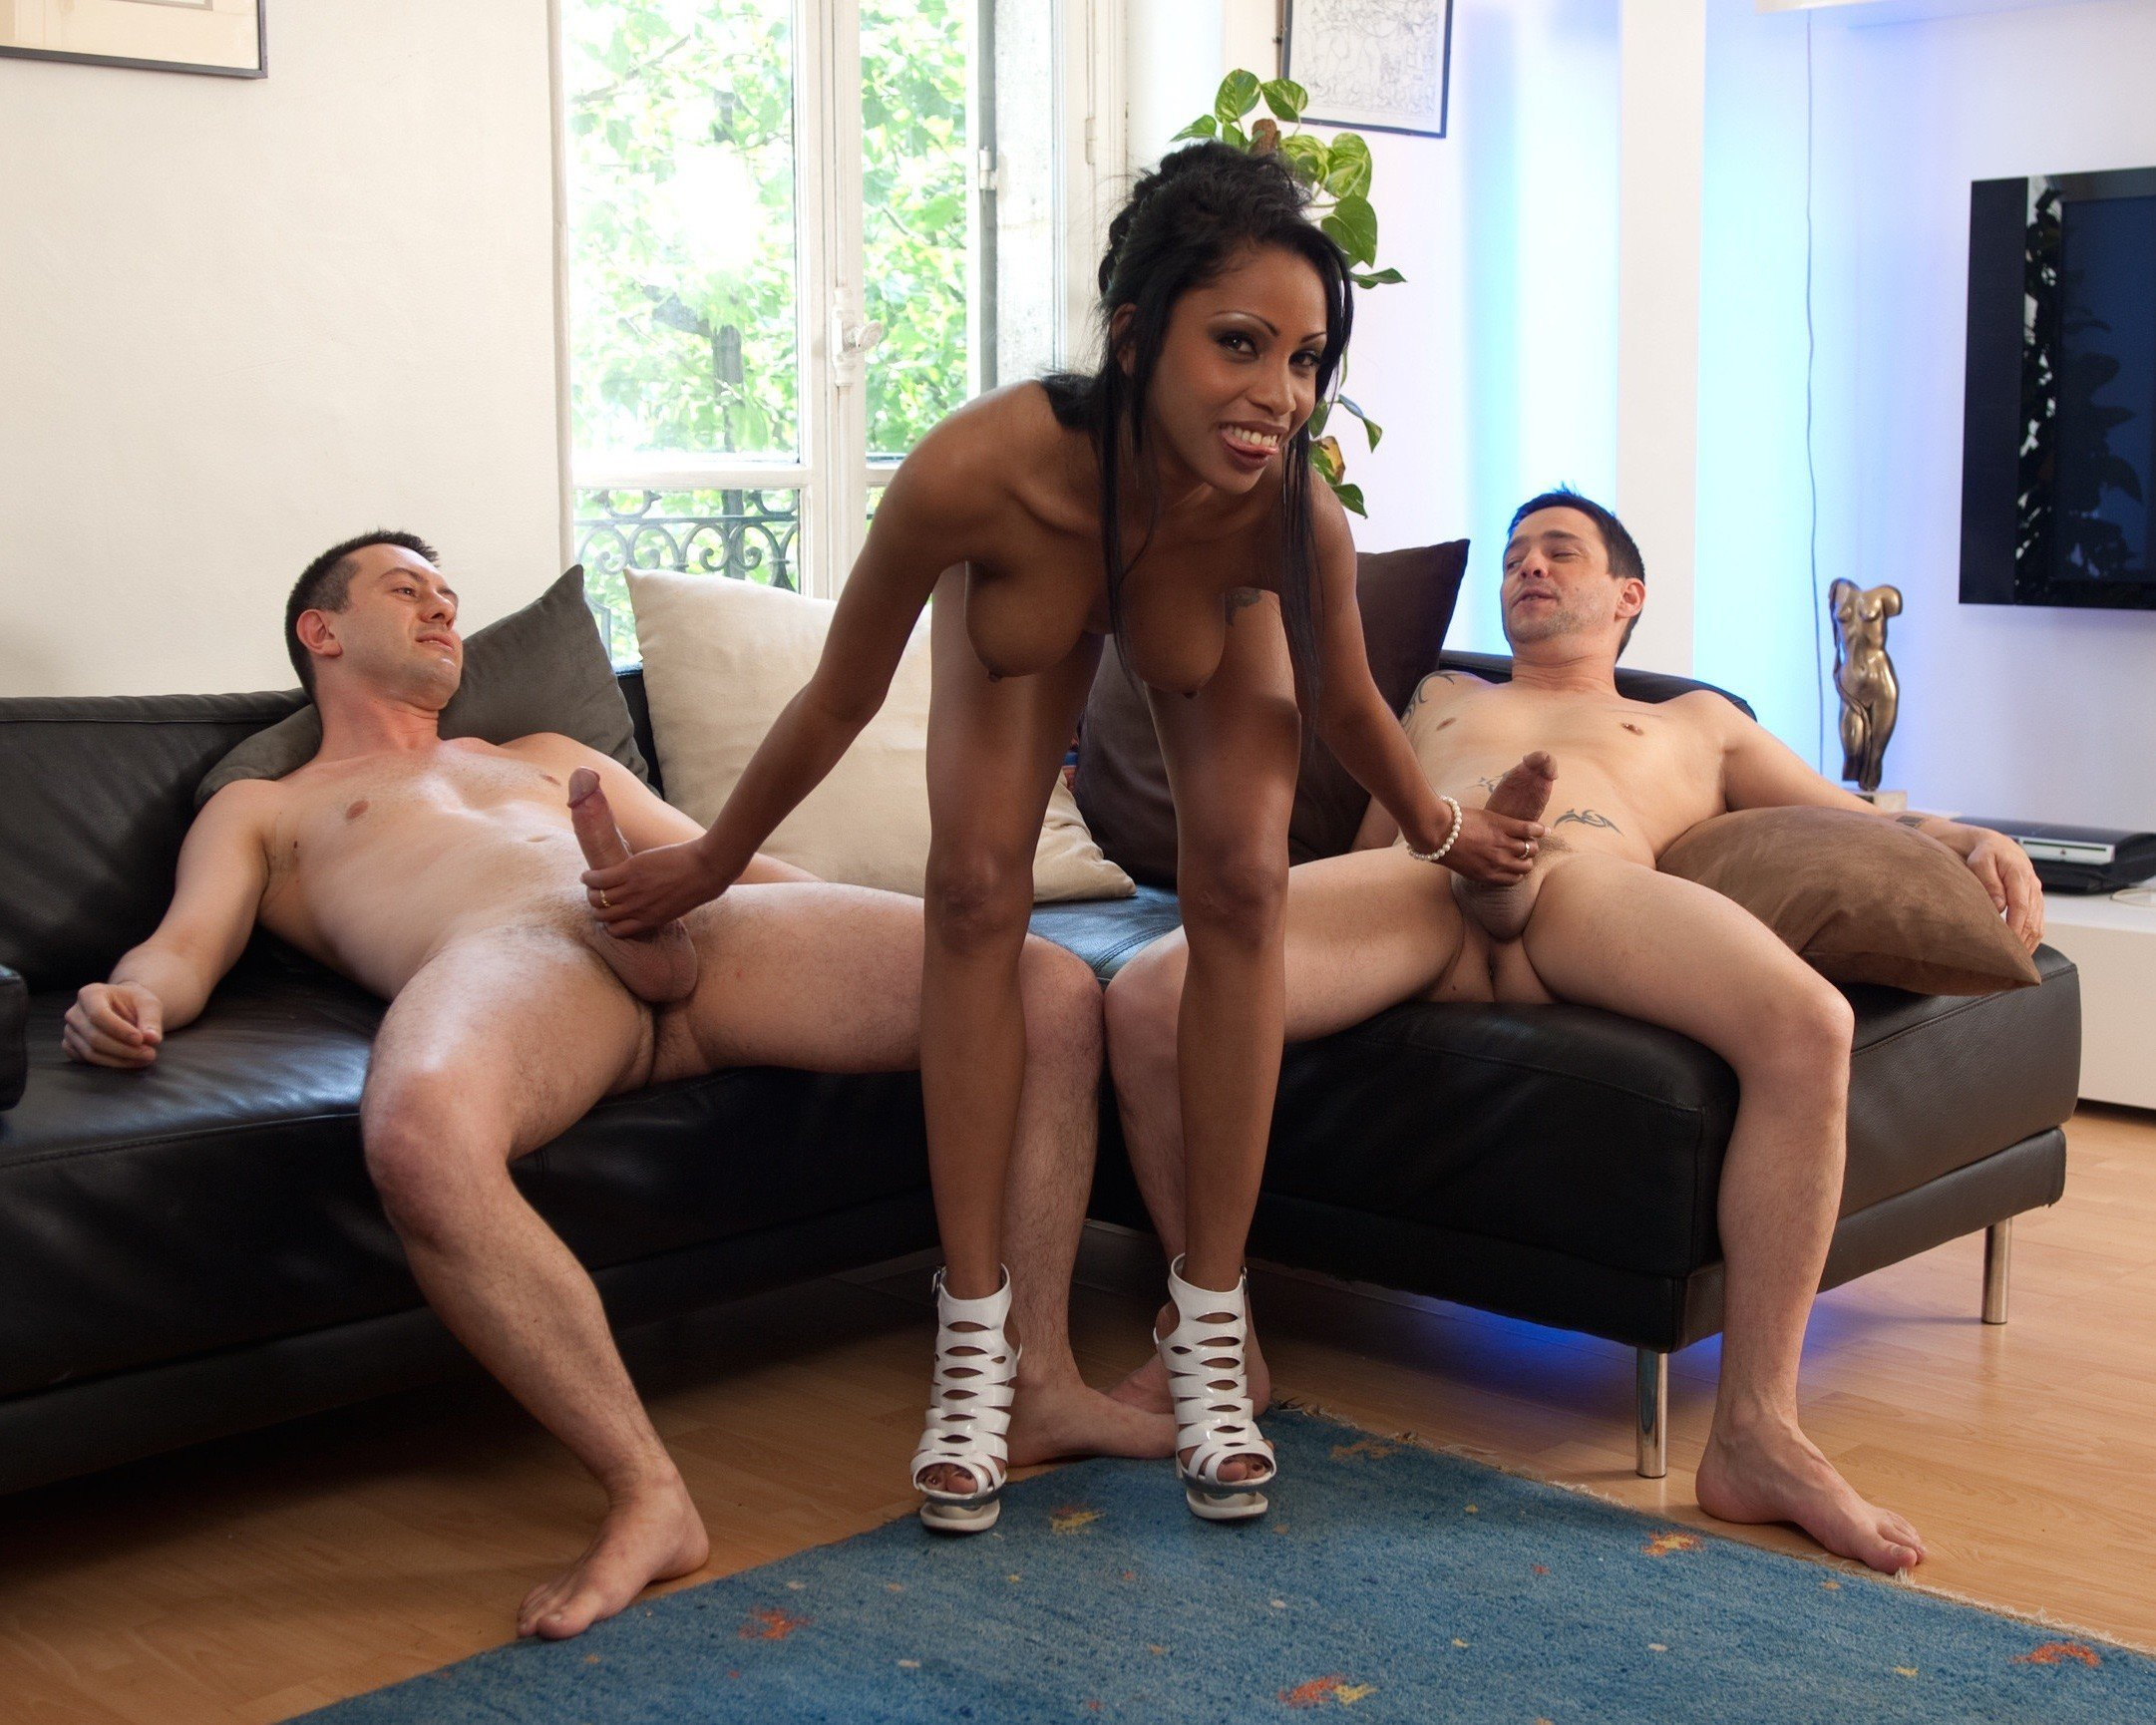 Wife cheat sex with thief interracial cuckold real